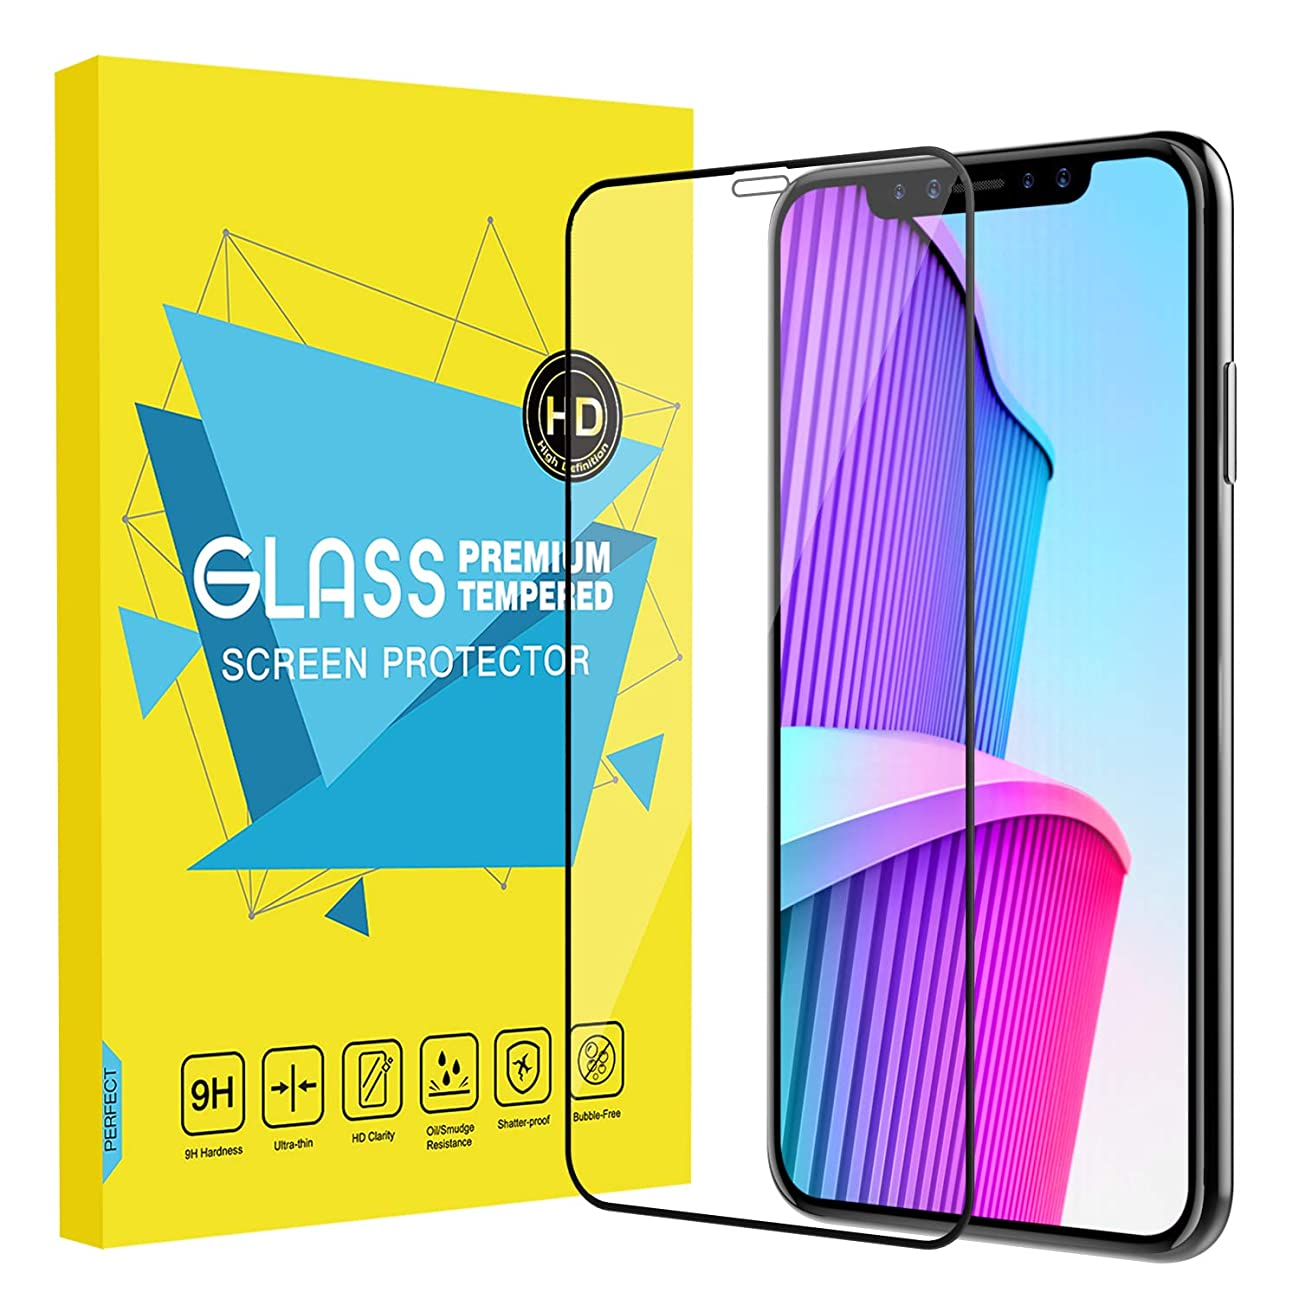 MoKo Screen Protector Replacement with iPhone Xs Max, [Scratch Terminator][Case-Friendly] Bubble-Free Clear 9H Hardness Tempered Glass Screen Protector Film Fit with iPhone Xs Max 6.5 inch 2018, Black